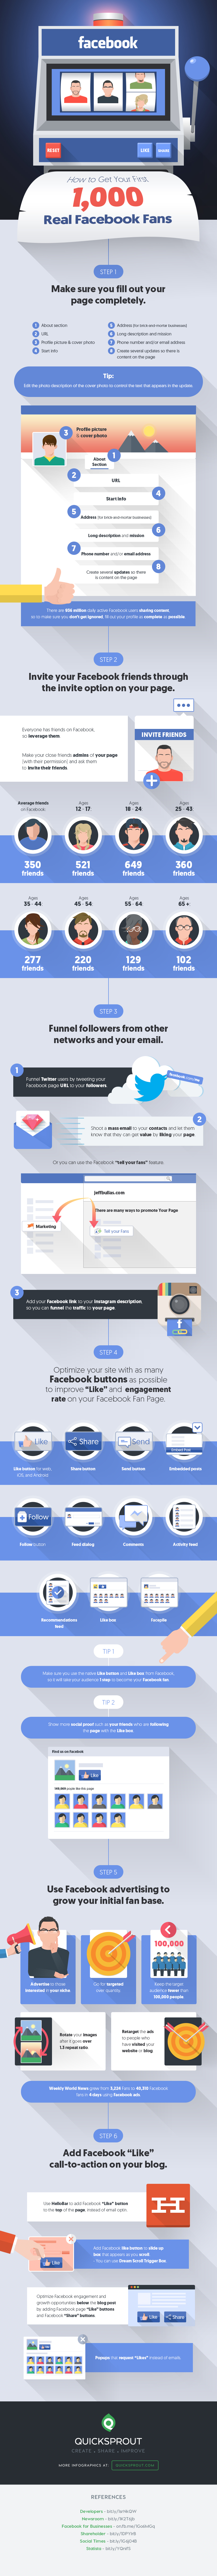 facebook followers infographic